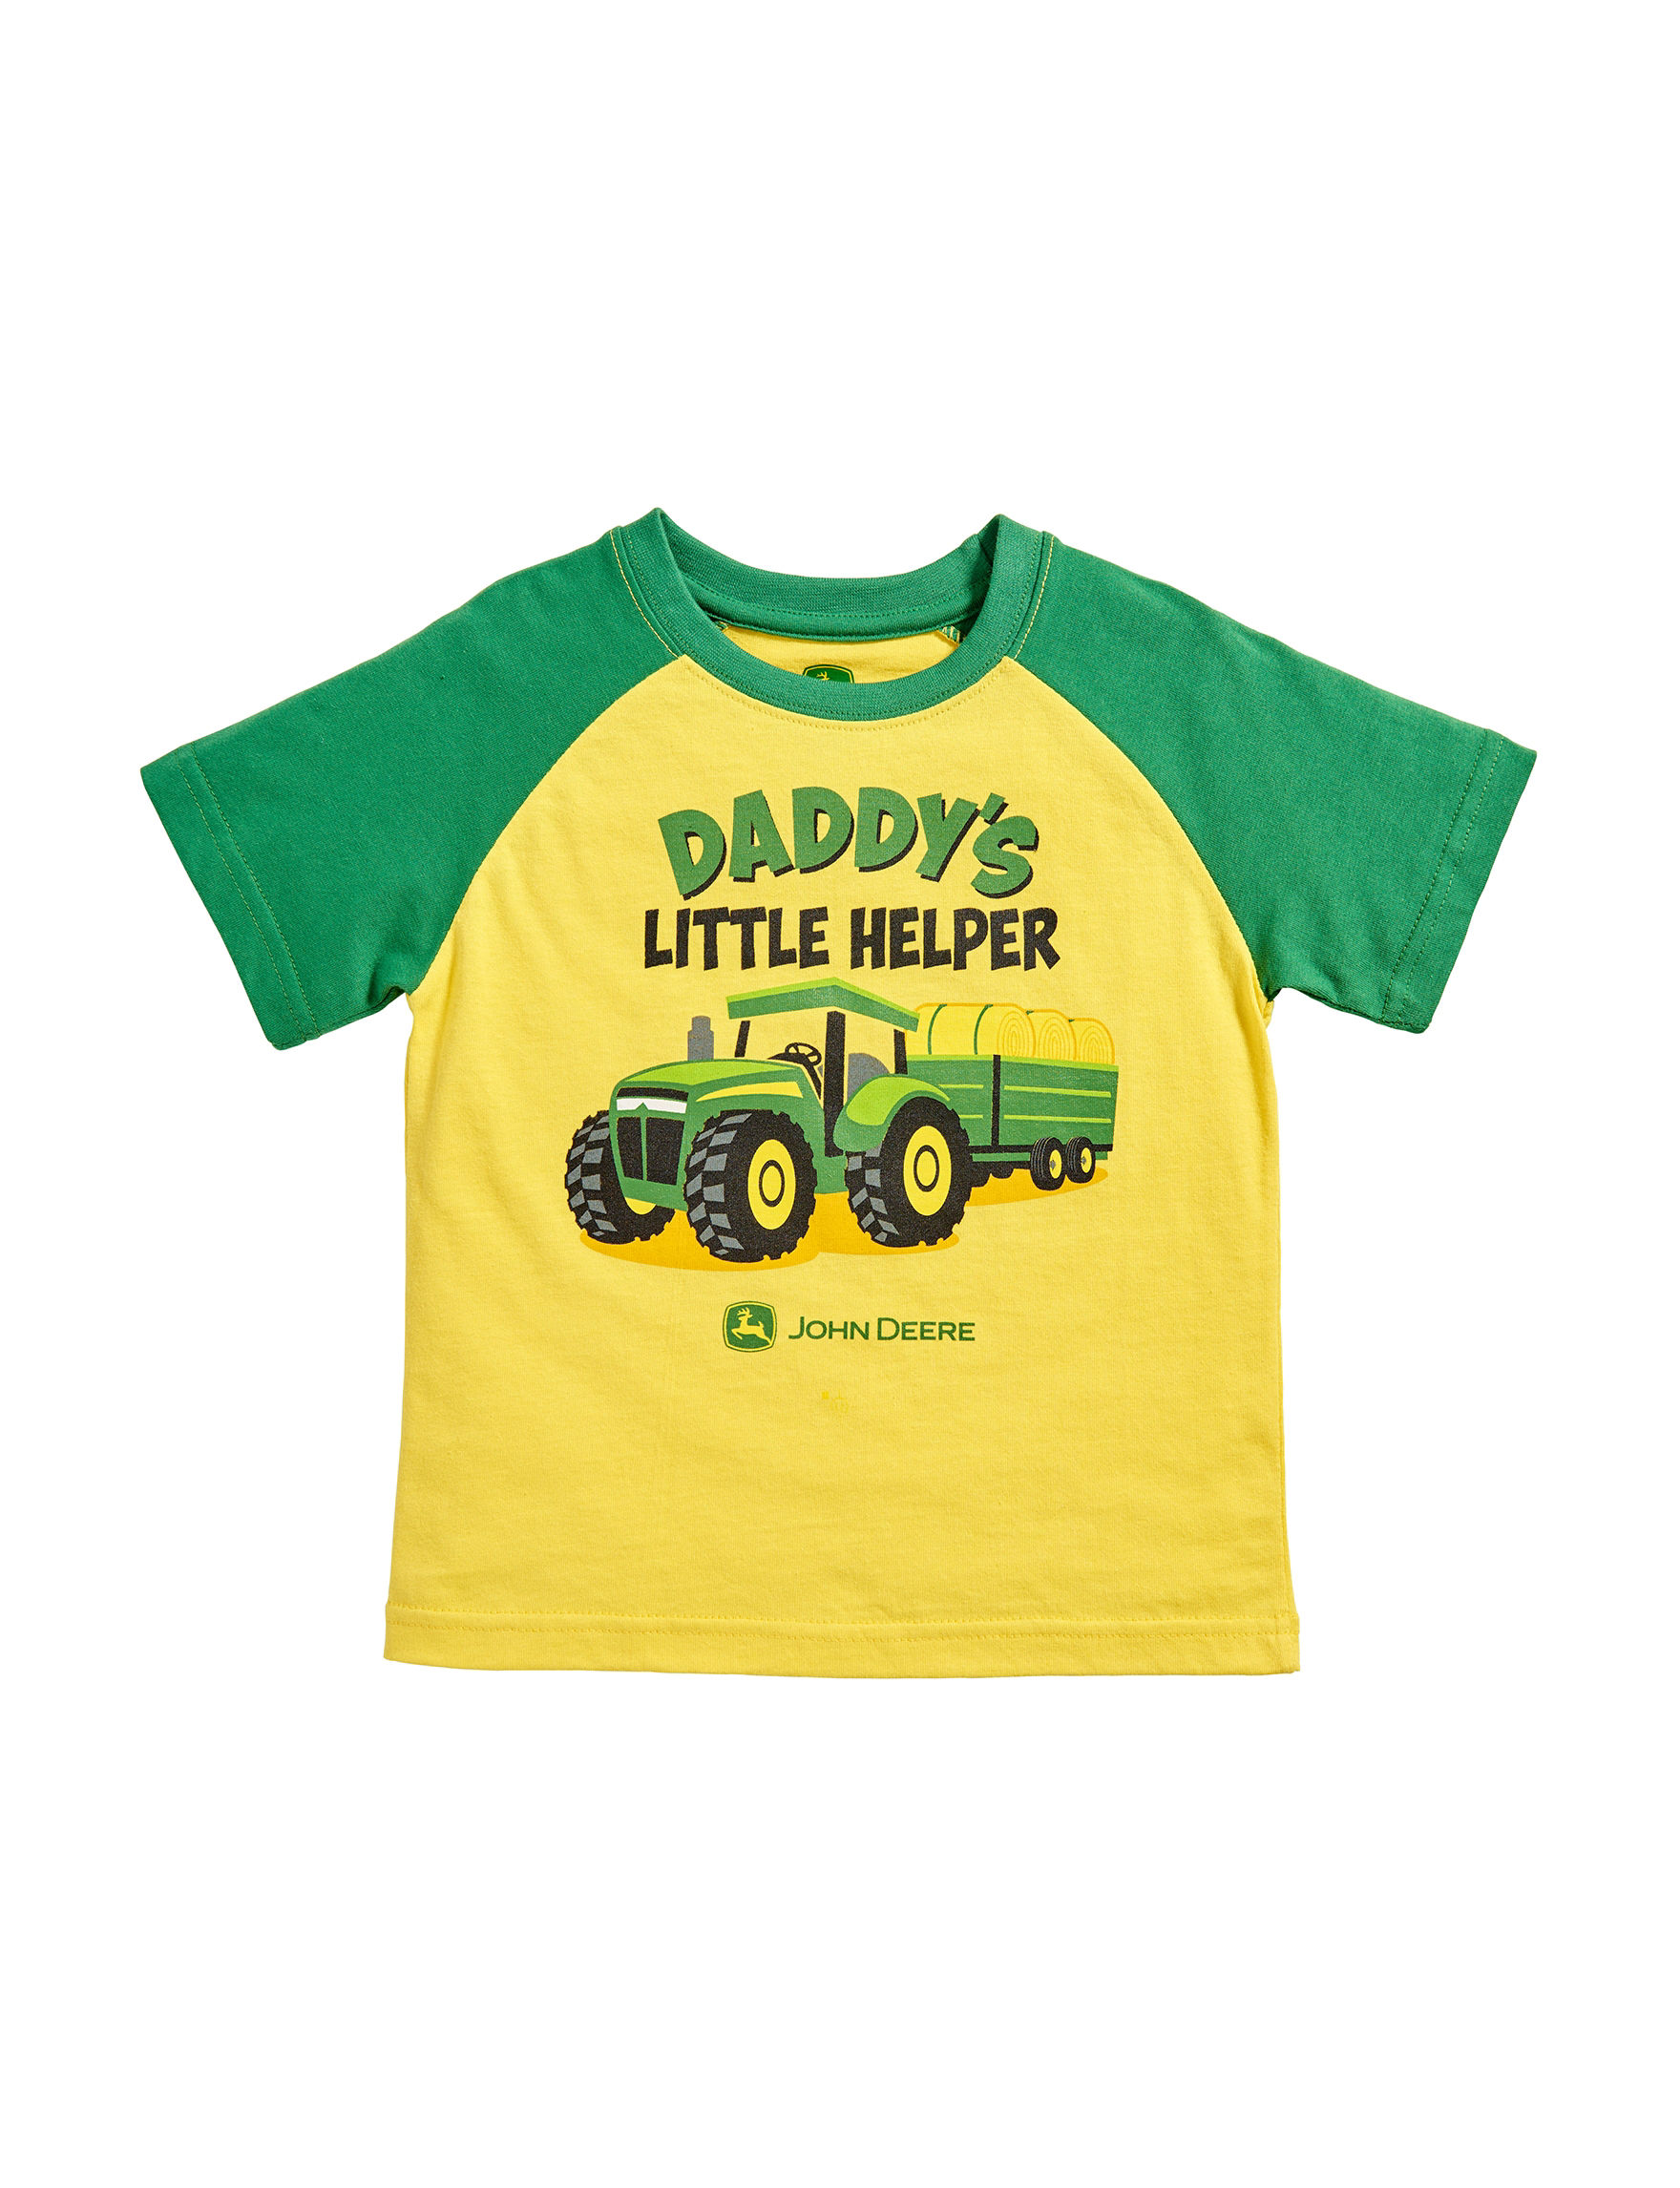 John Deere Daddys Little Helper T Shirt Baby 12 24 Mos Stage